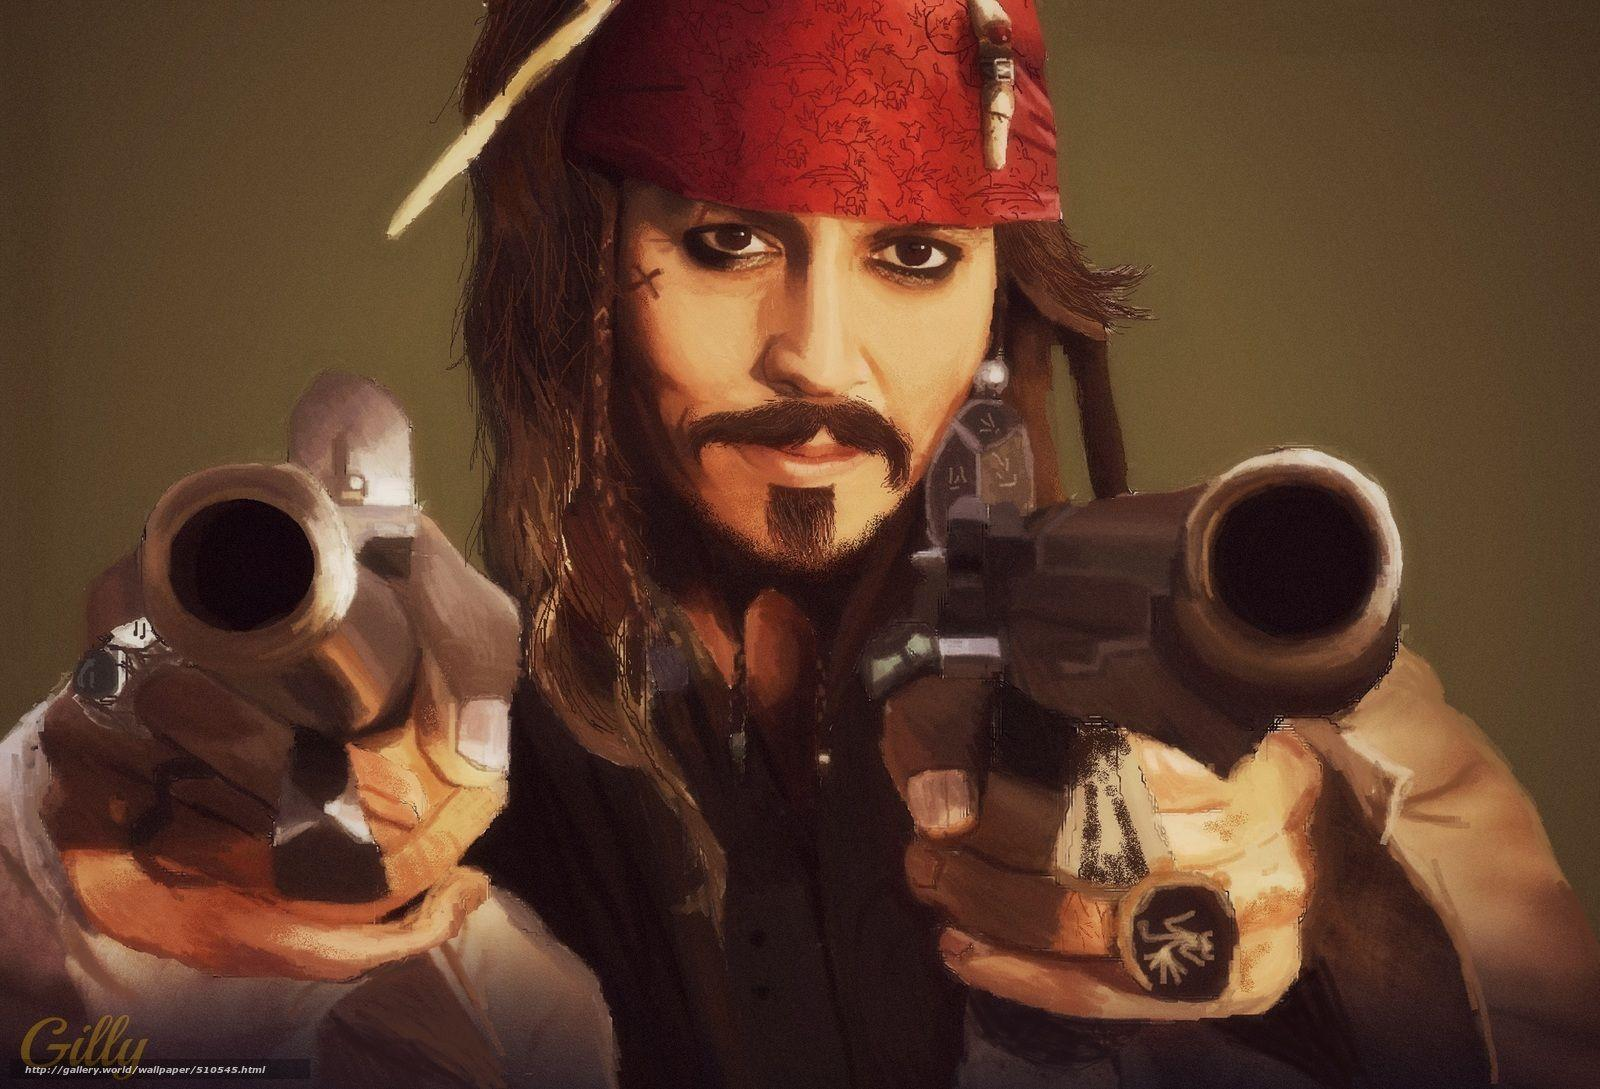 Download wallpaper Jack Sparrow, Johnny Depp (johnny depp), pirate ...